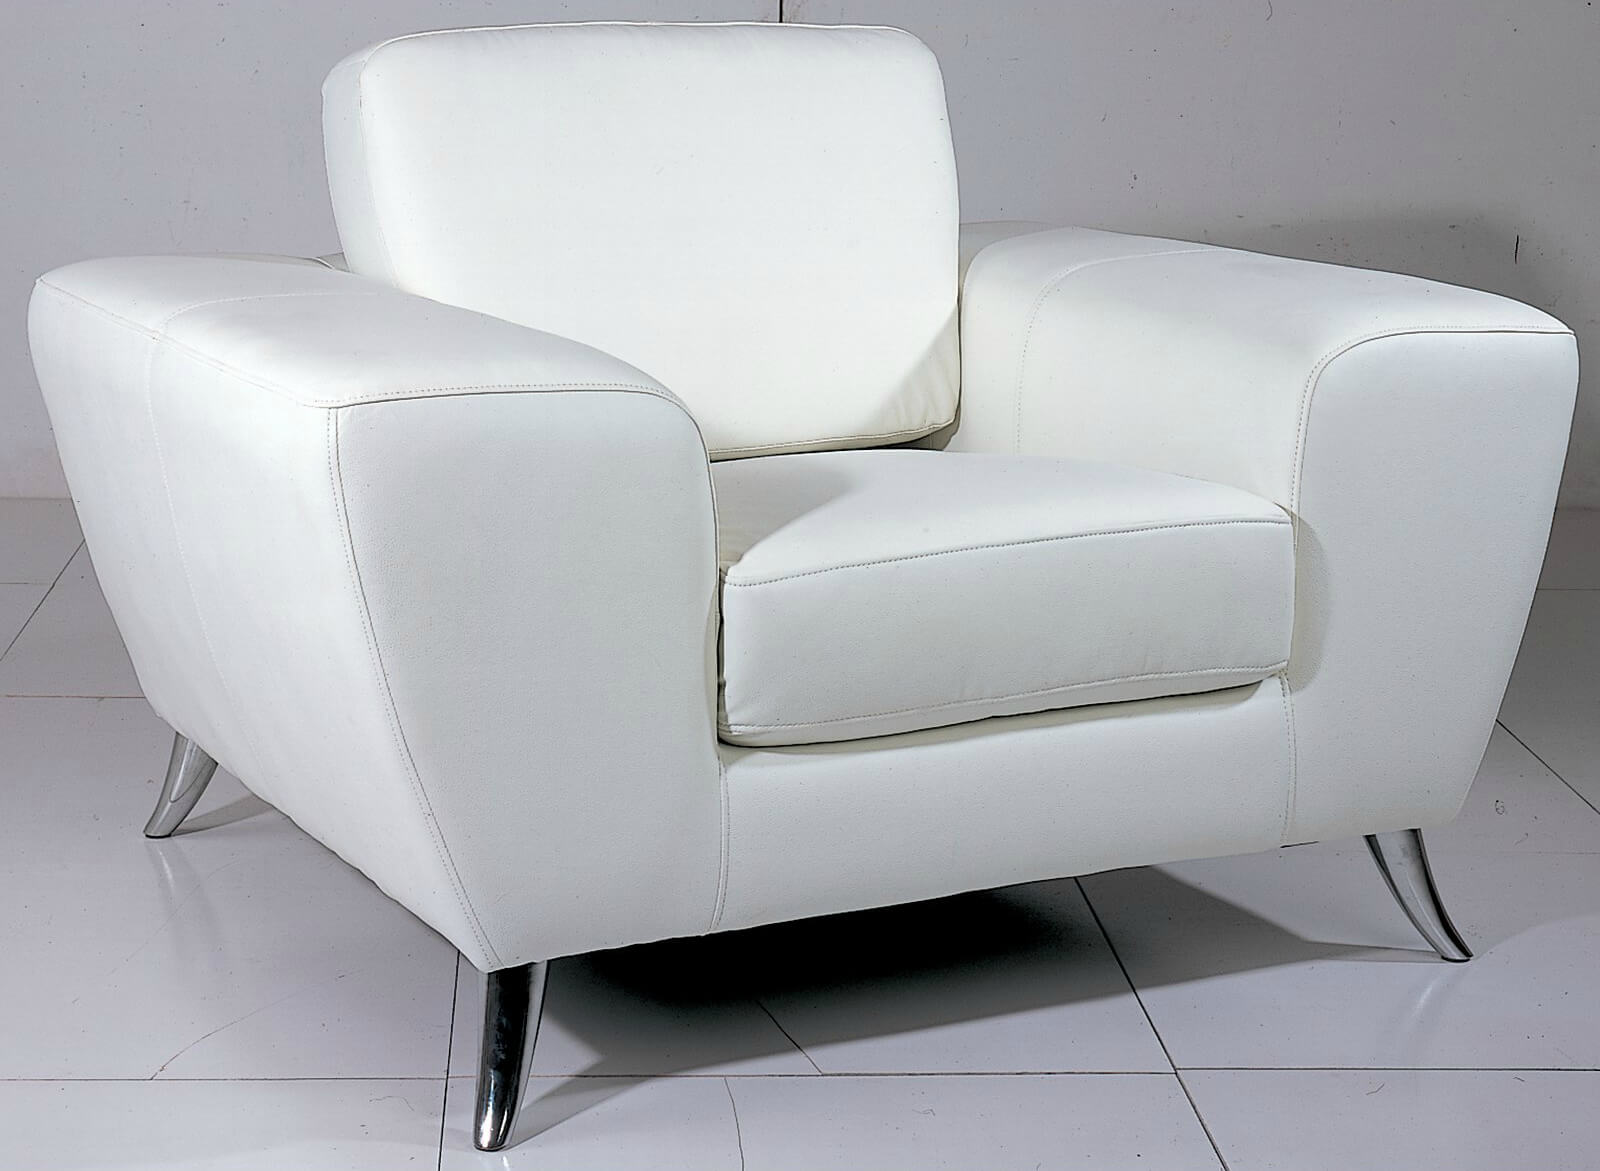 Unique Accent Chair 37 White Modern Accent Chairs For The Living Room